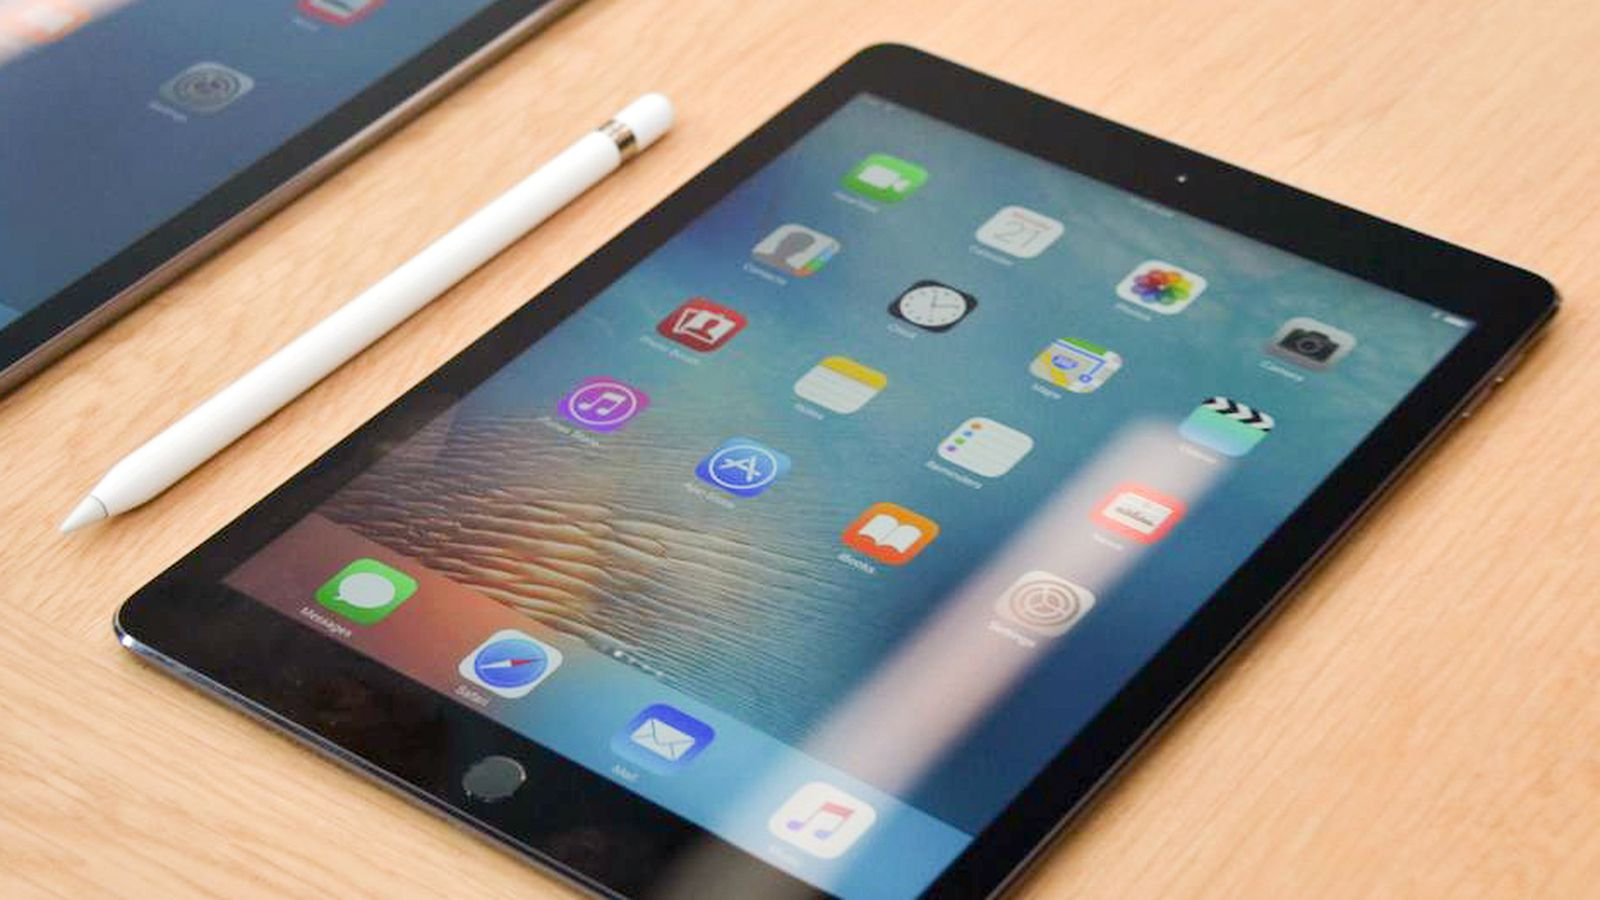 Do you know of any excellent Office-compatible applications available for the iPad?